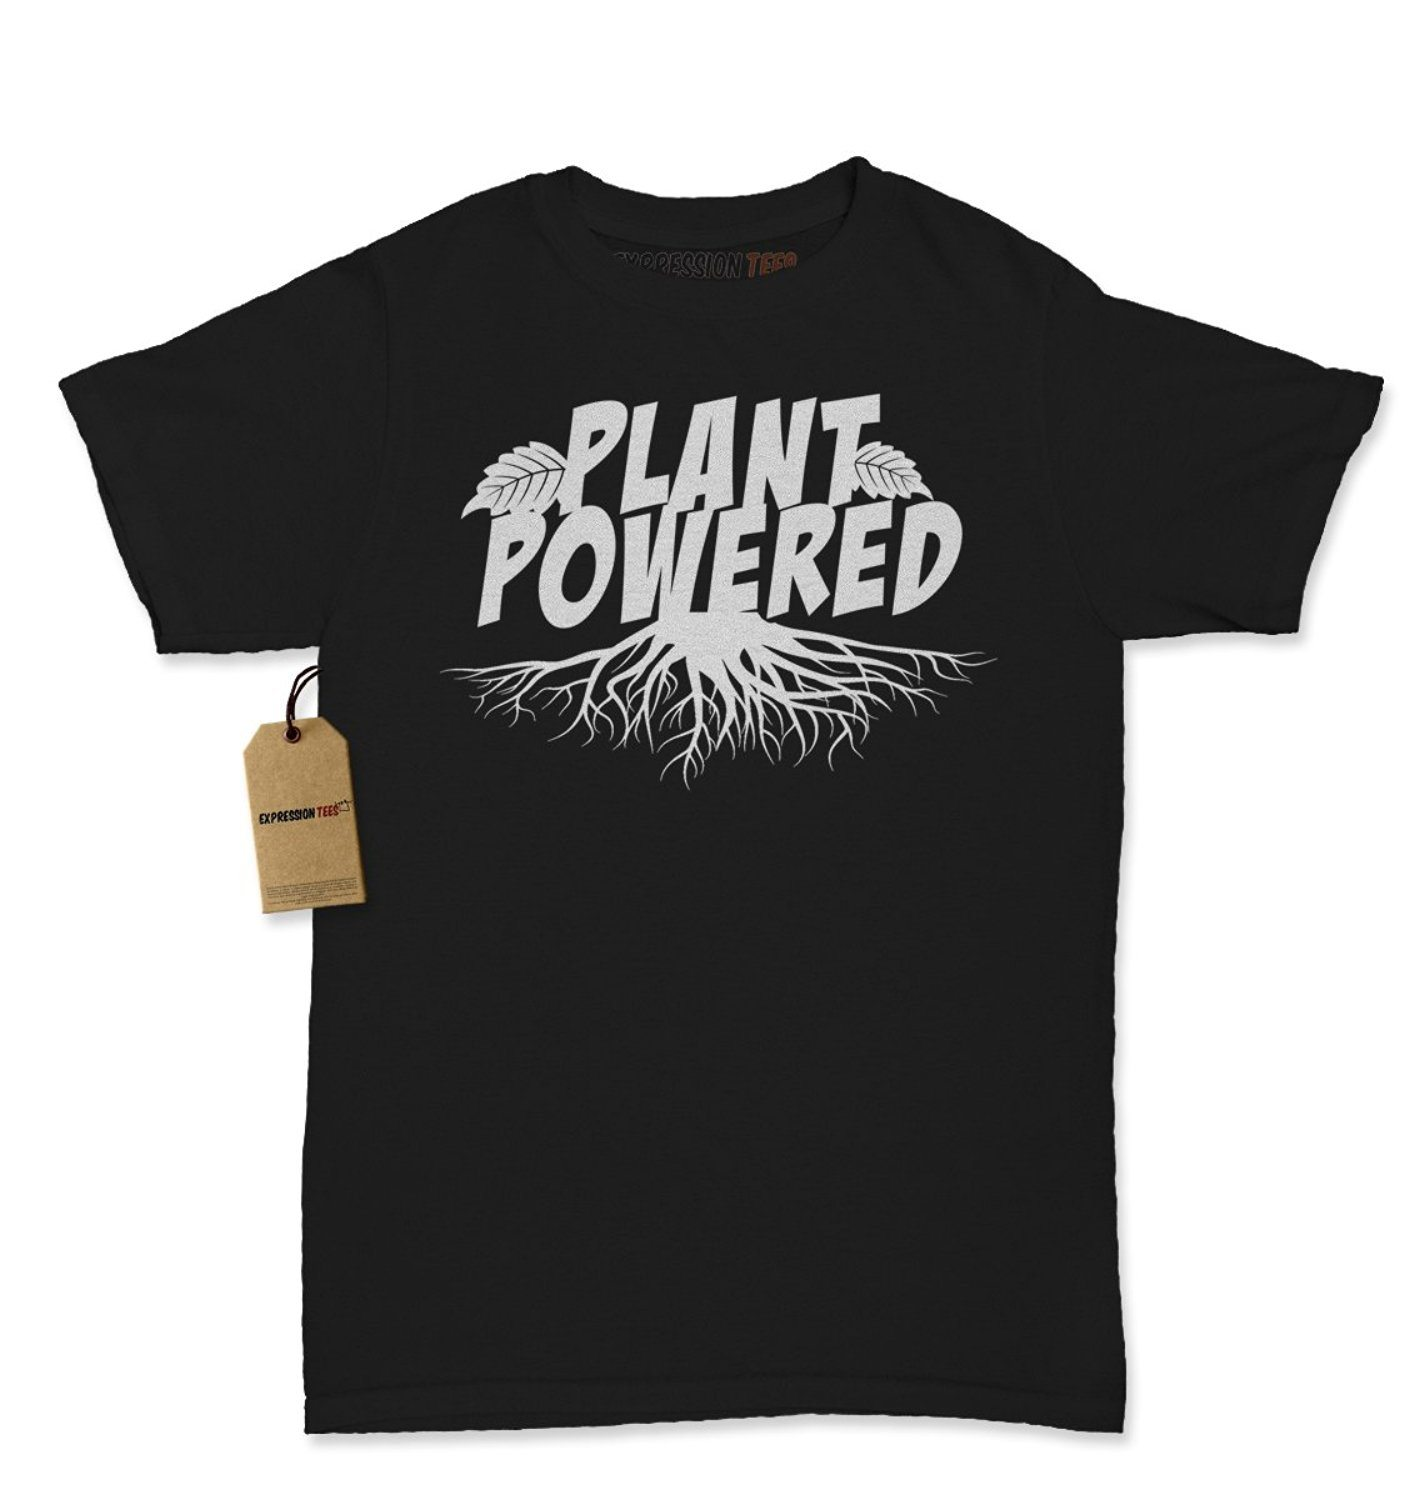 Expression Tees Plant Powered Vegan Vegetarian Support Womens